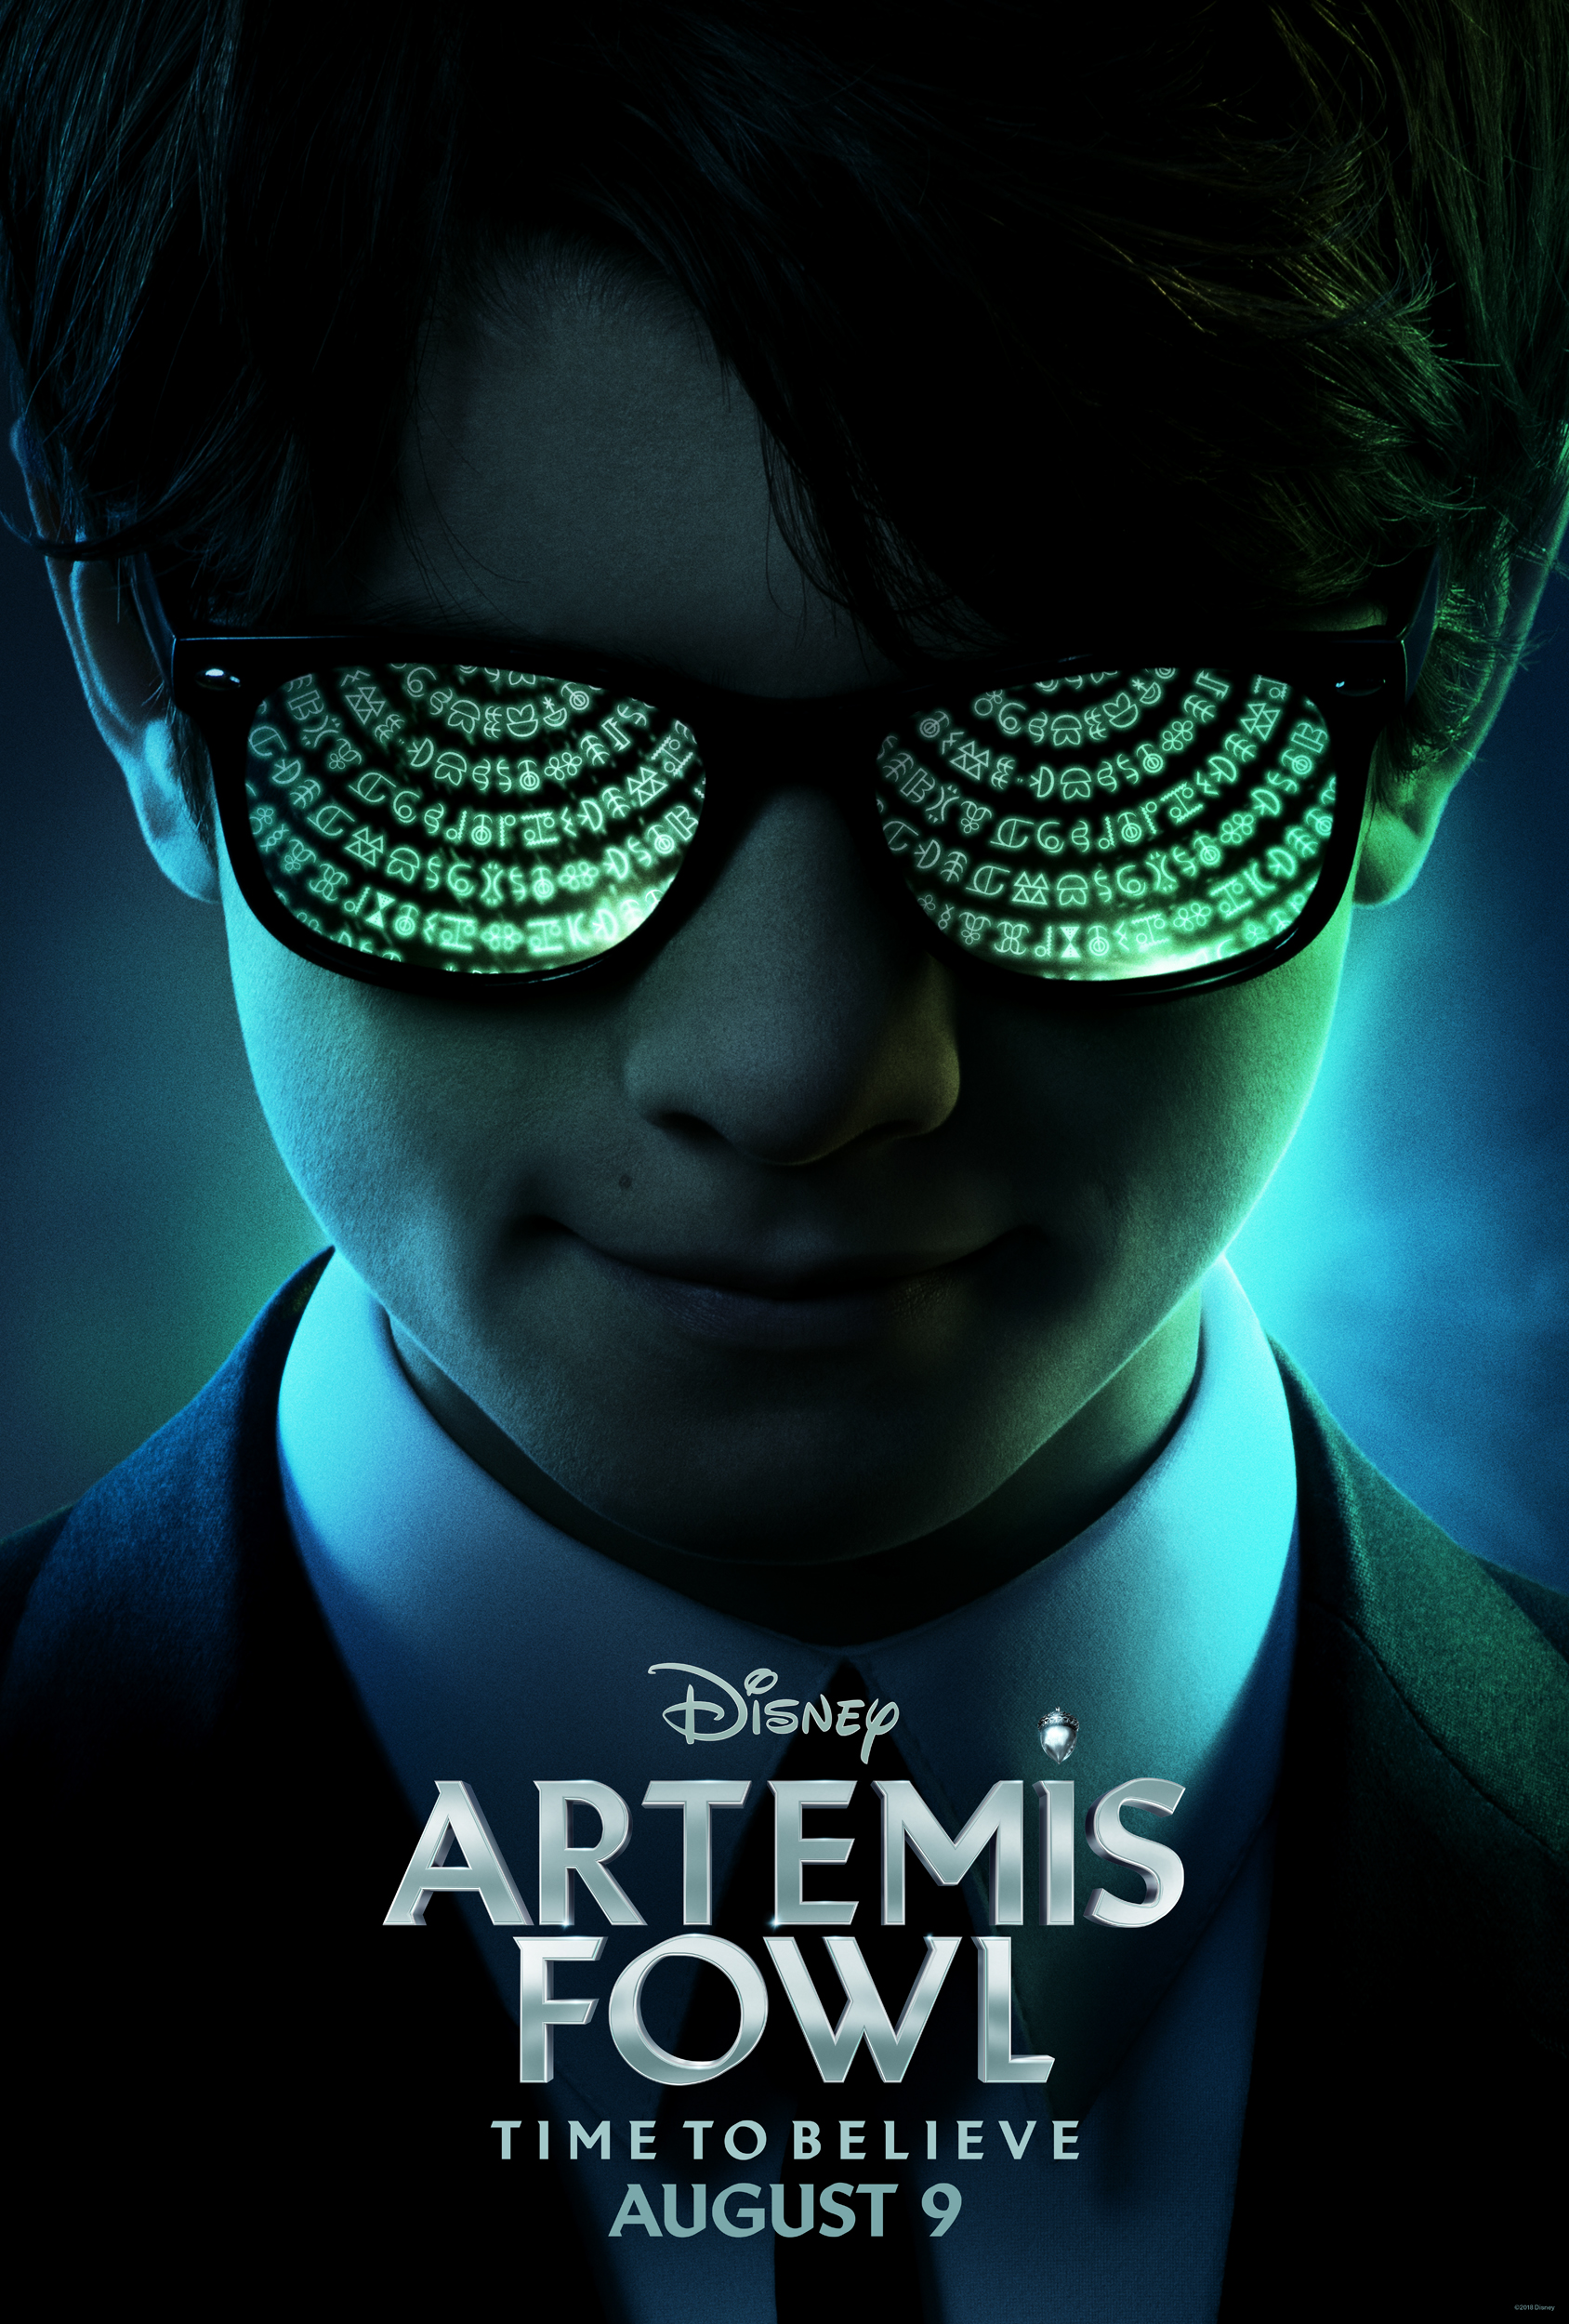 Disney's ARTEMIS FOWL - Check out the Teaser Trailer & Poster #ArtemisFowl #DISNEY #movie #poster